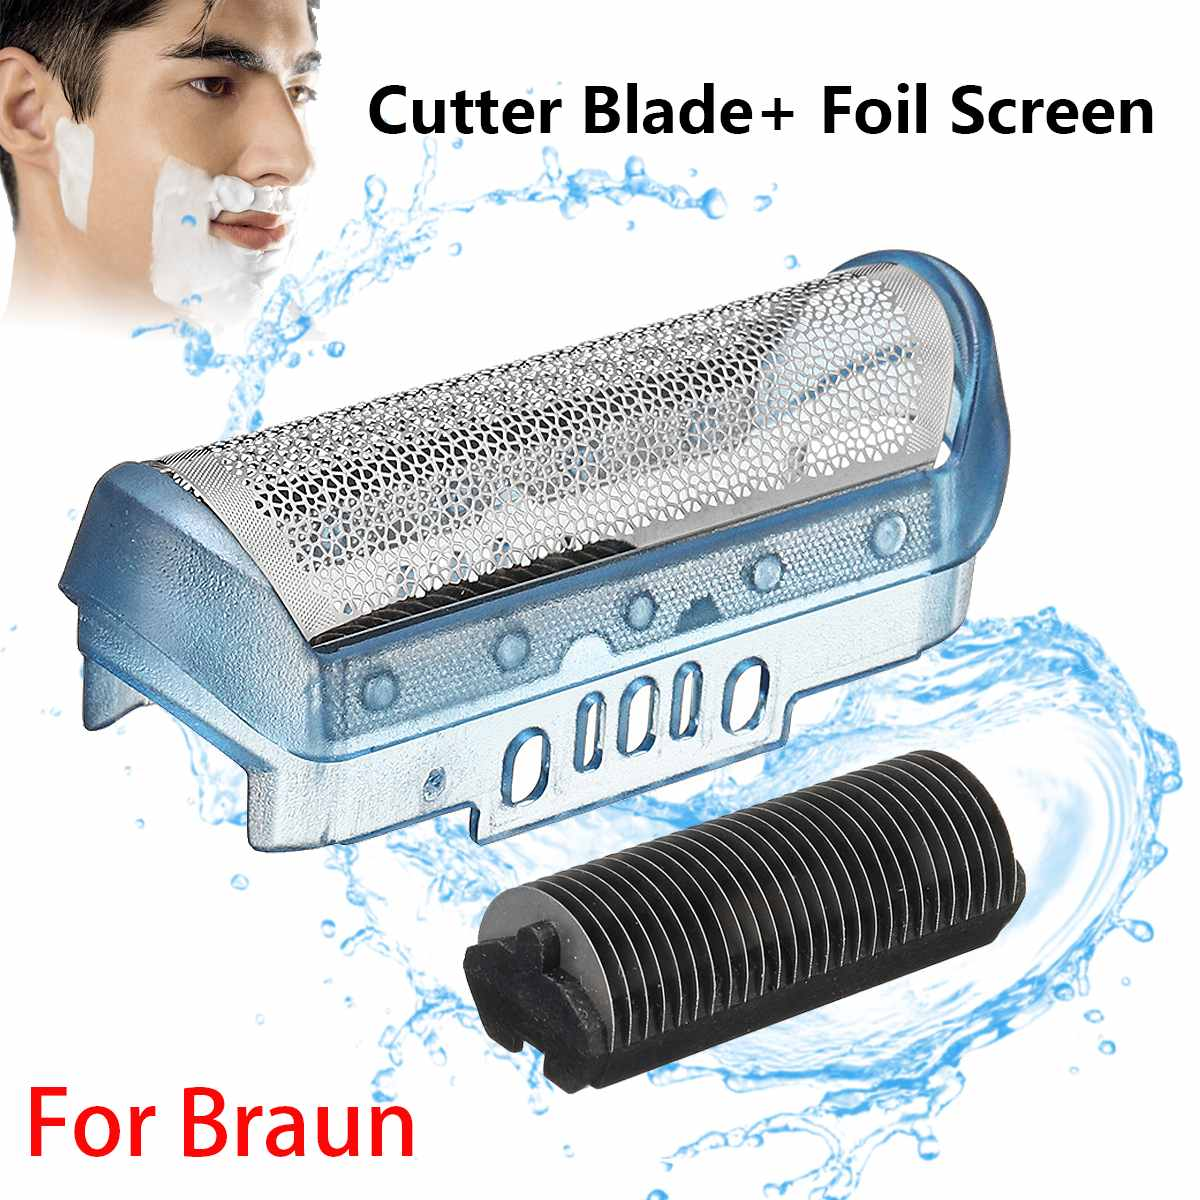 20S Shaver Foil Replacement Blade Cutter For Braun 20S Z20 Z30 Z40 Z50 Z60 2876 2615 2775 2866 For Cruzer 4 5 5732 170 180 190